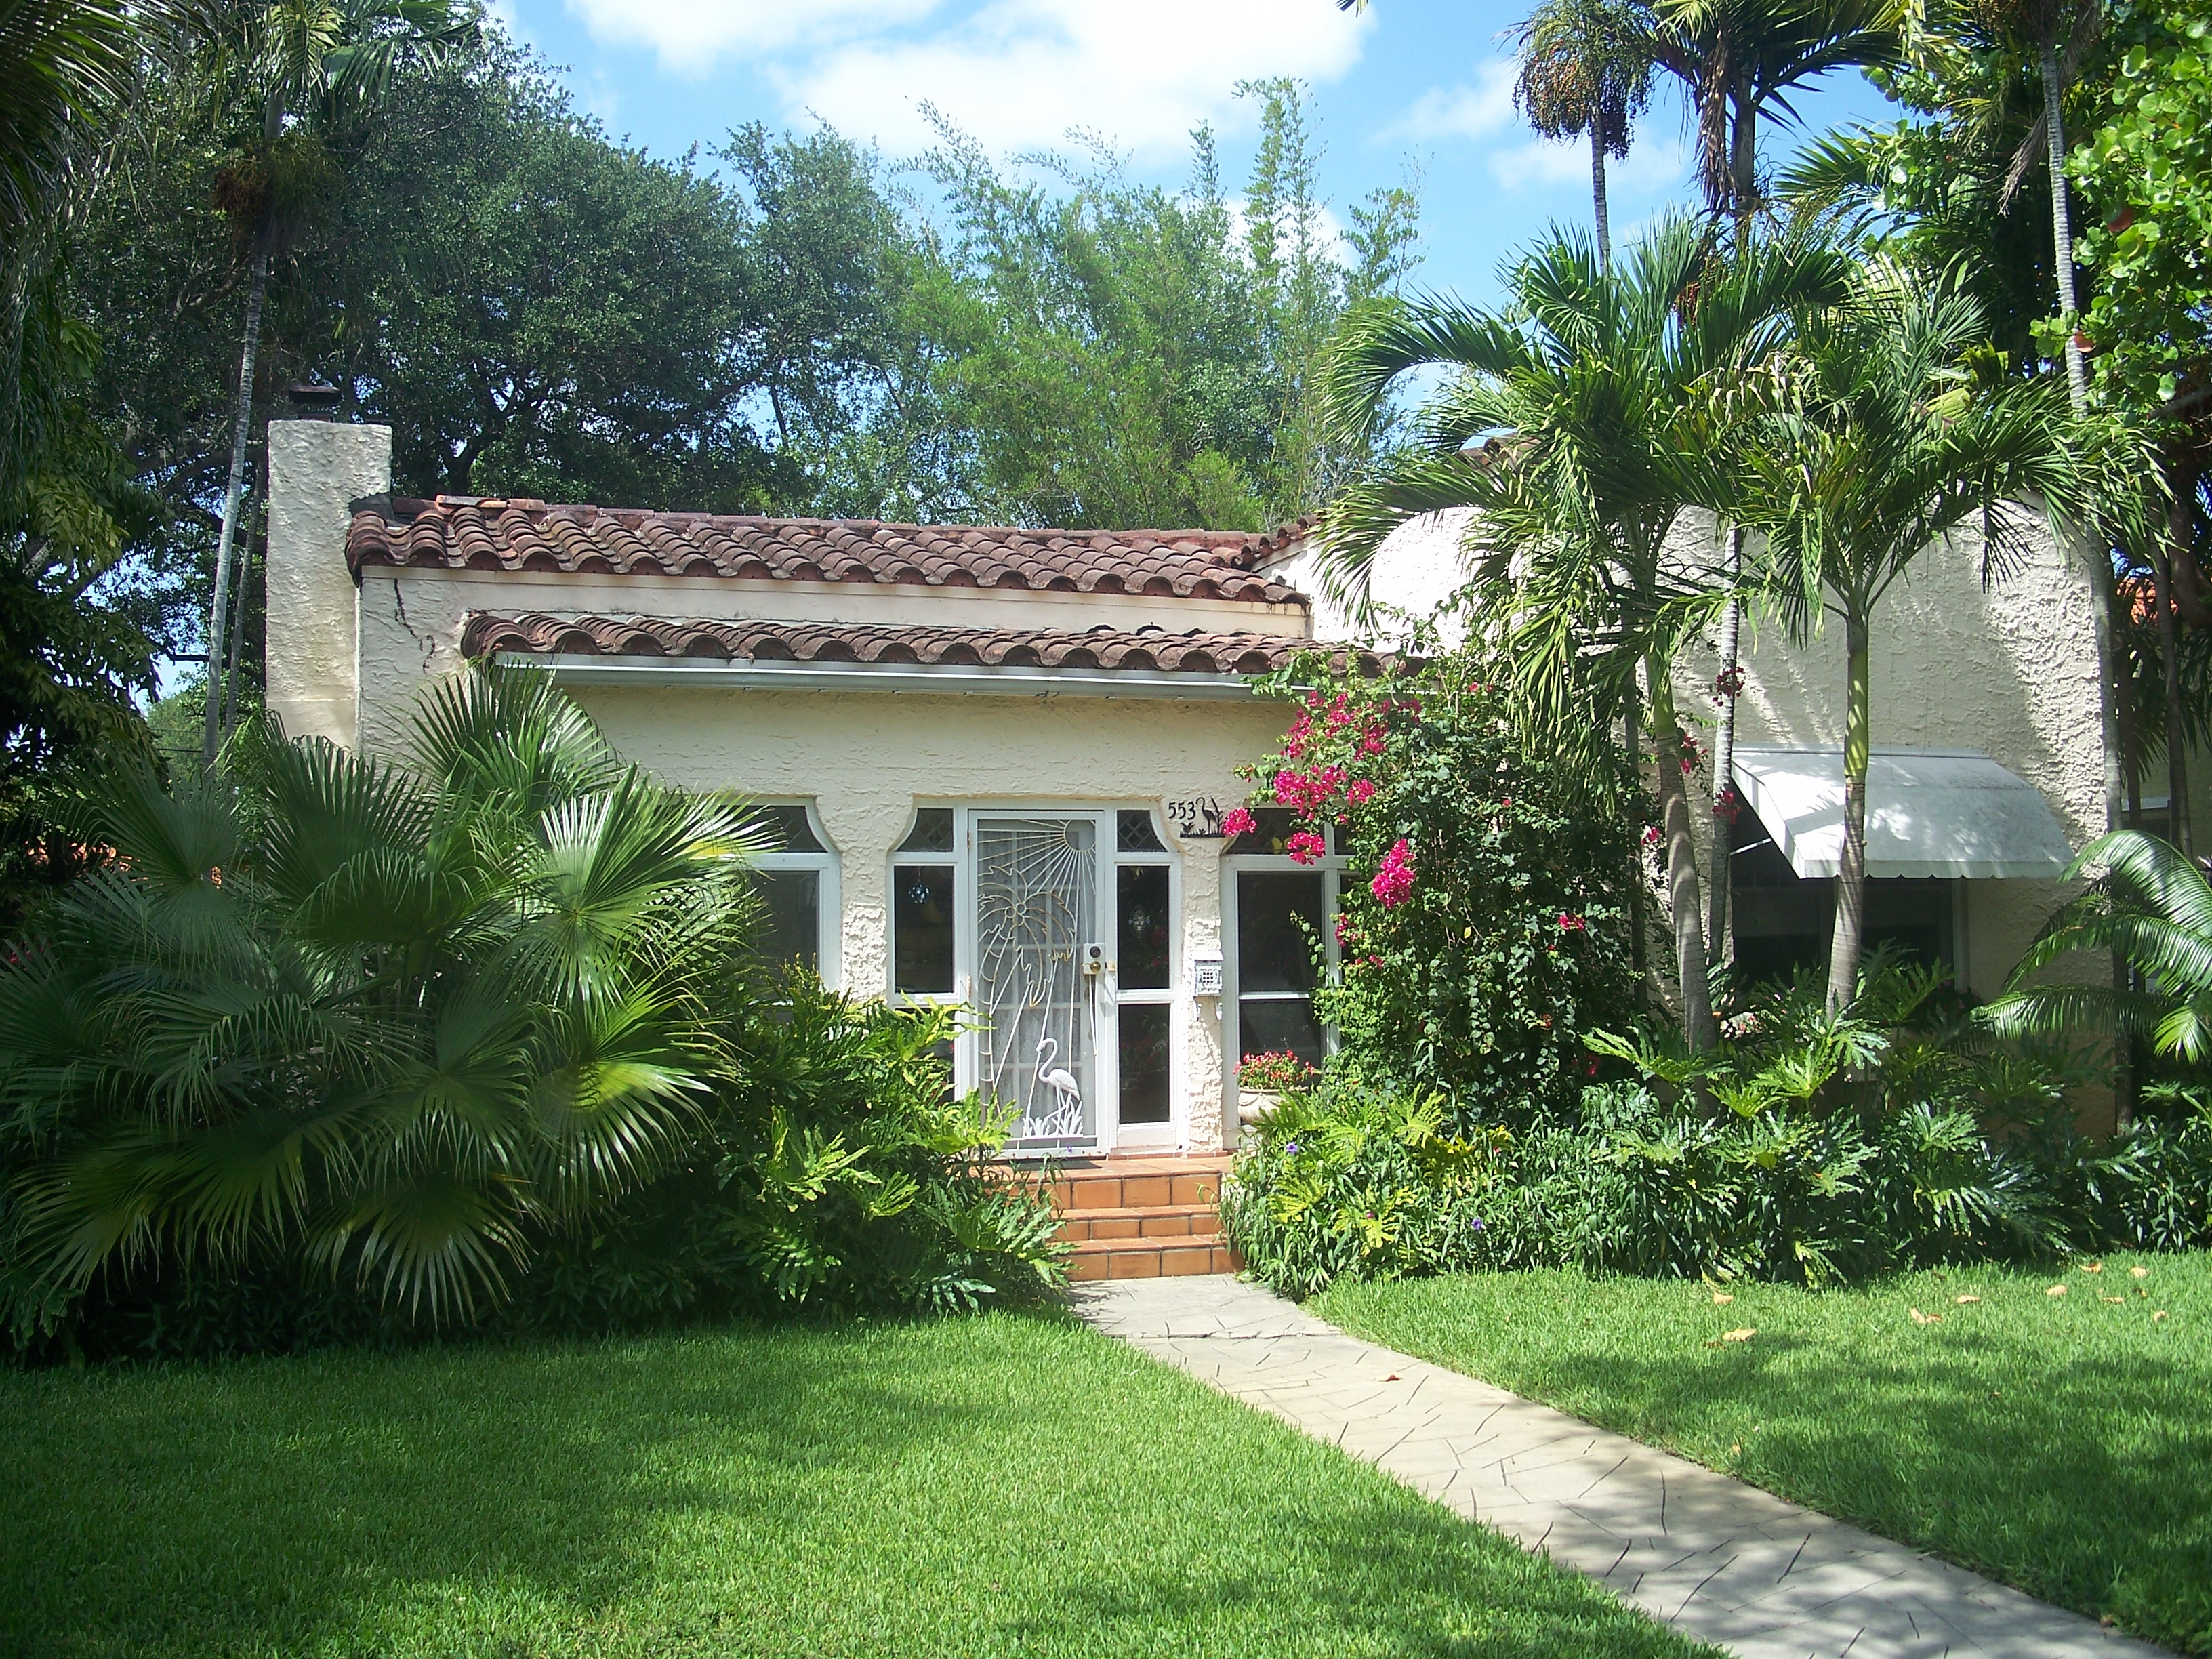 Sell My House Fast Miami Shores - We buy houses Miami Shores